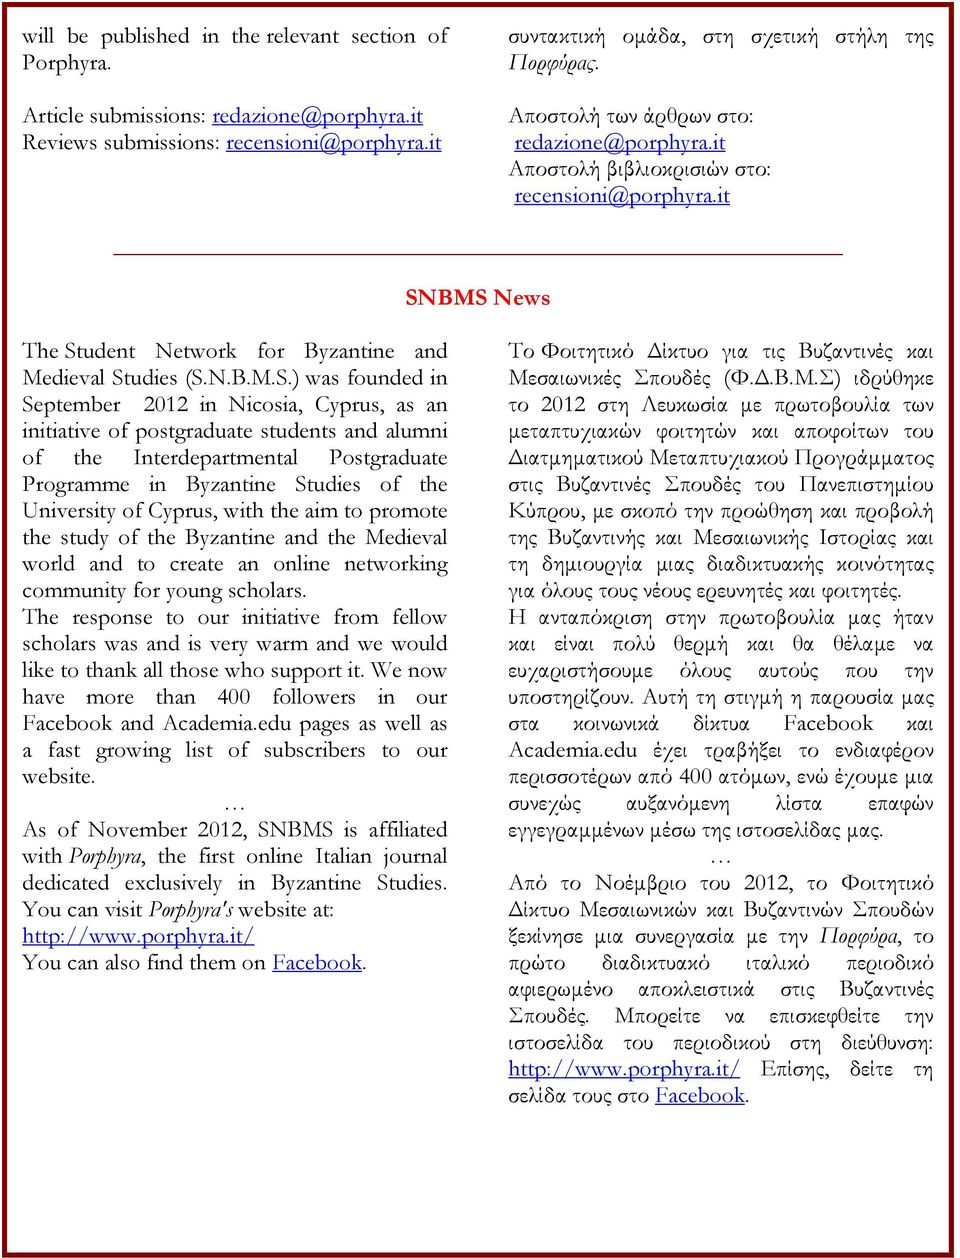 BMS News The Student Network for Byzantine and Medieval Studies (S.N.B.M.S.) was founded in September 2012 in Nicosia, Cyprus, as an initiative of postgraduate students and alumni of the